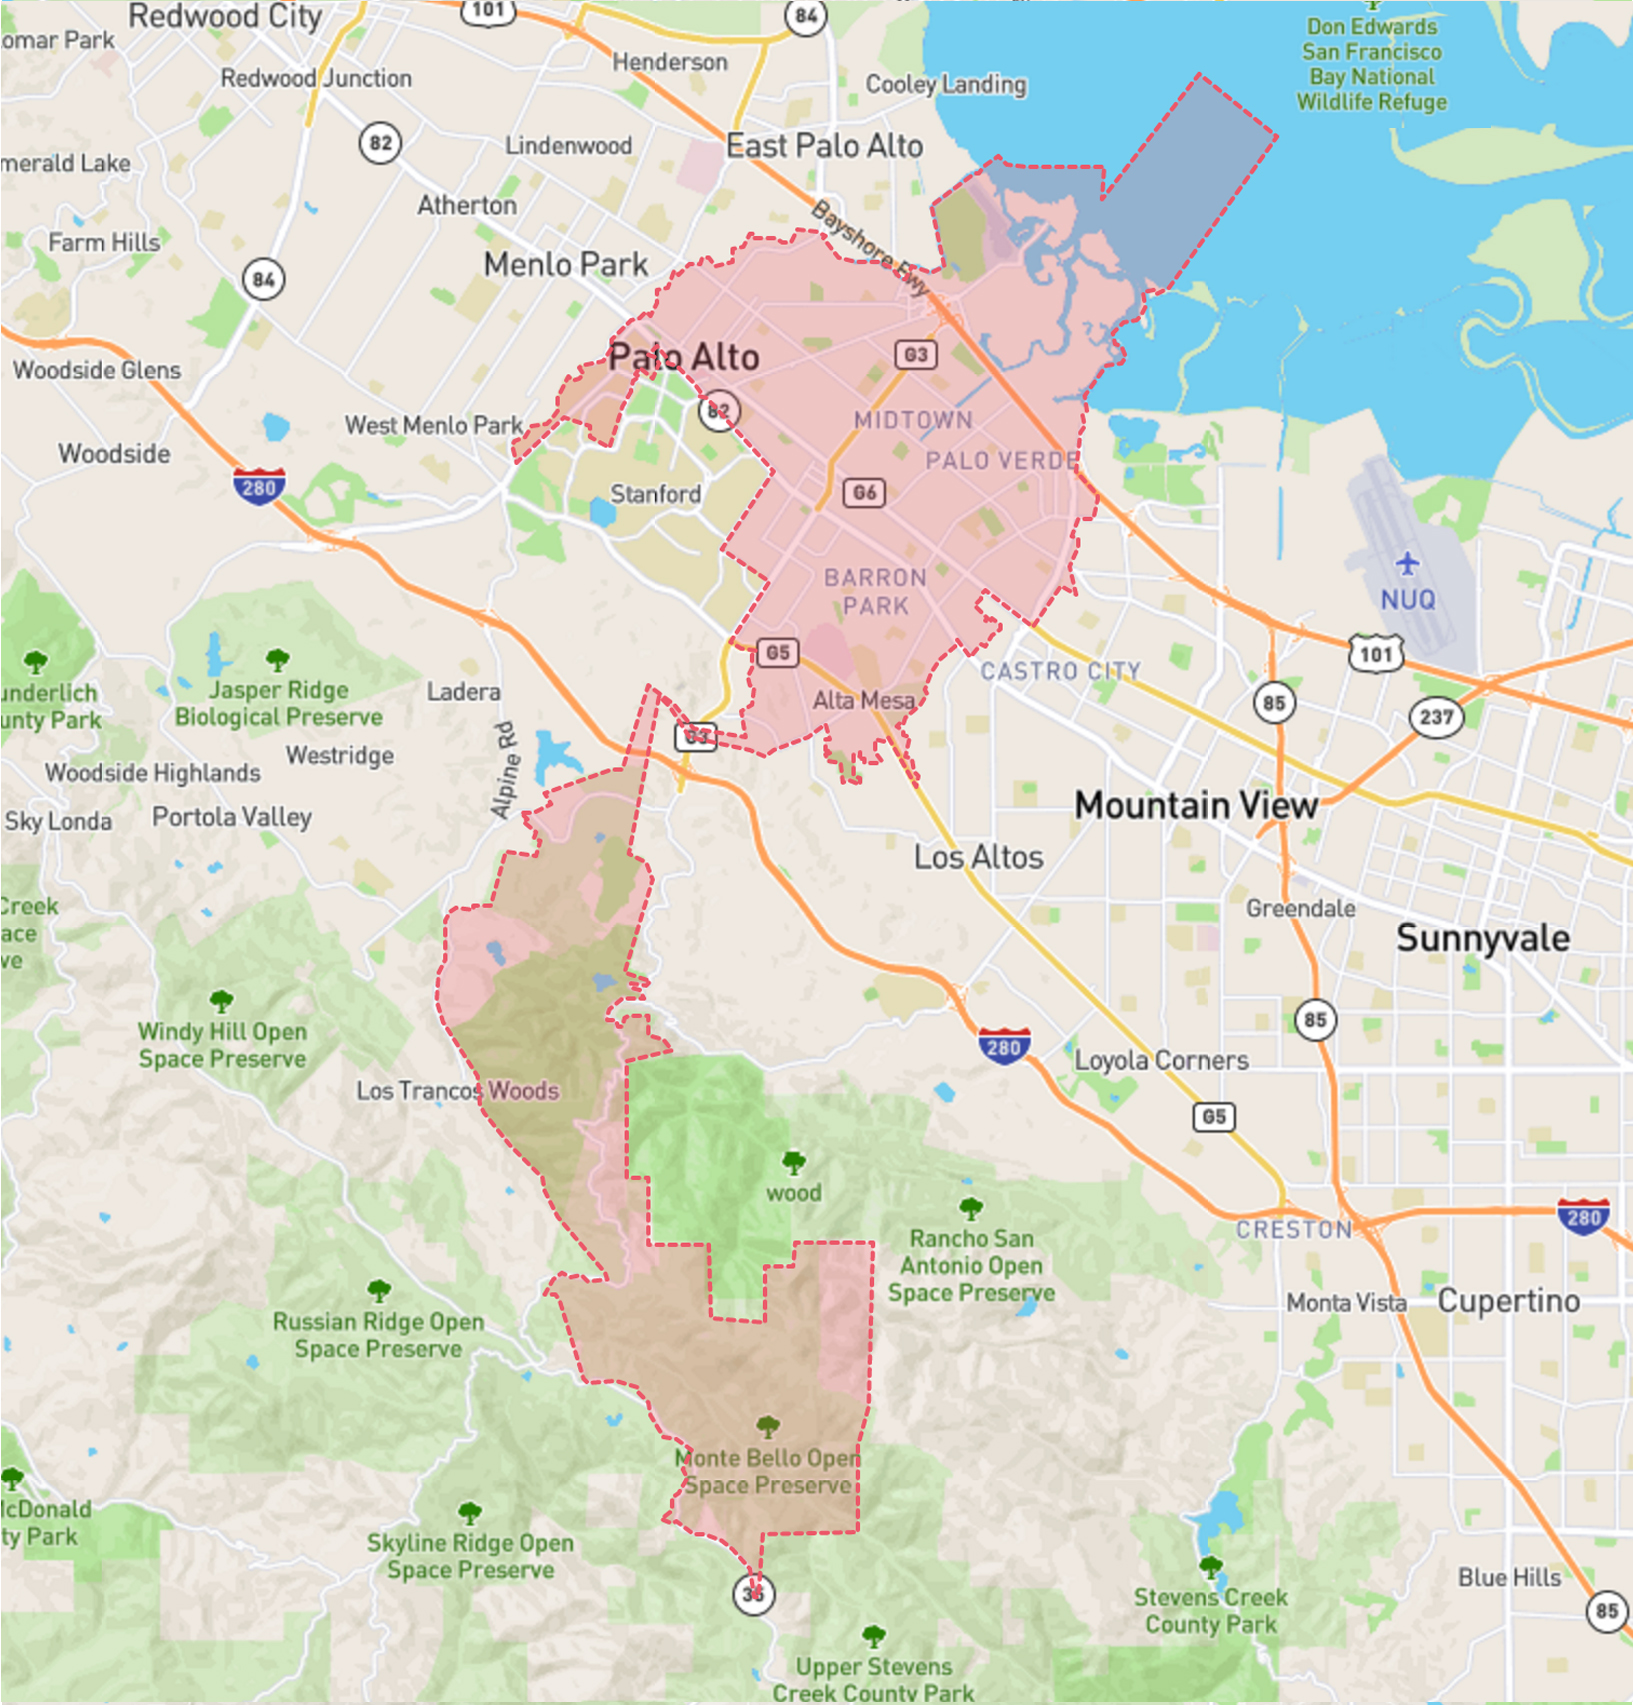 CLICK ON MAP TO SEE PROPERTY LISTINGS